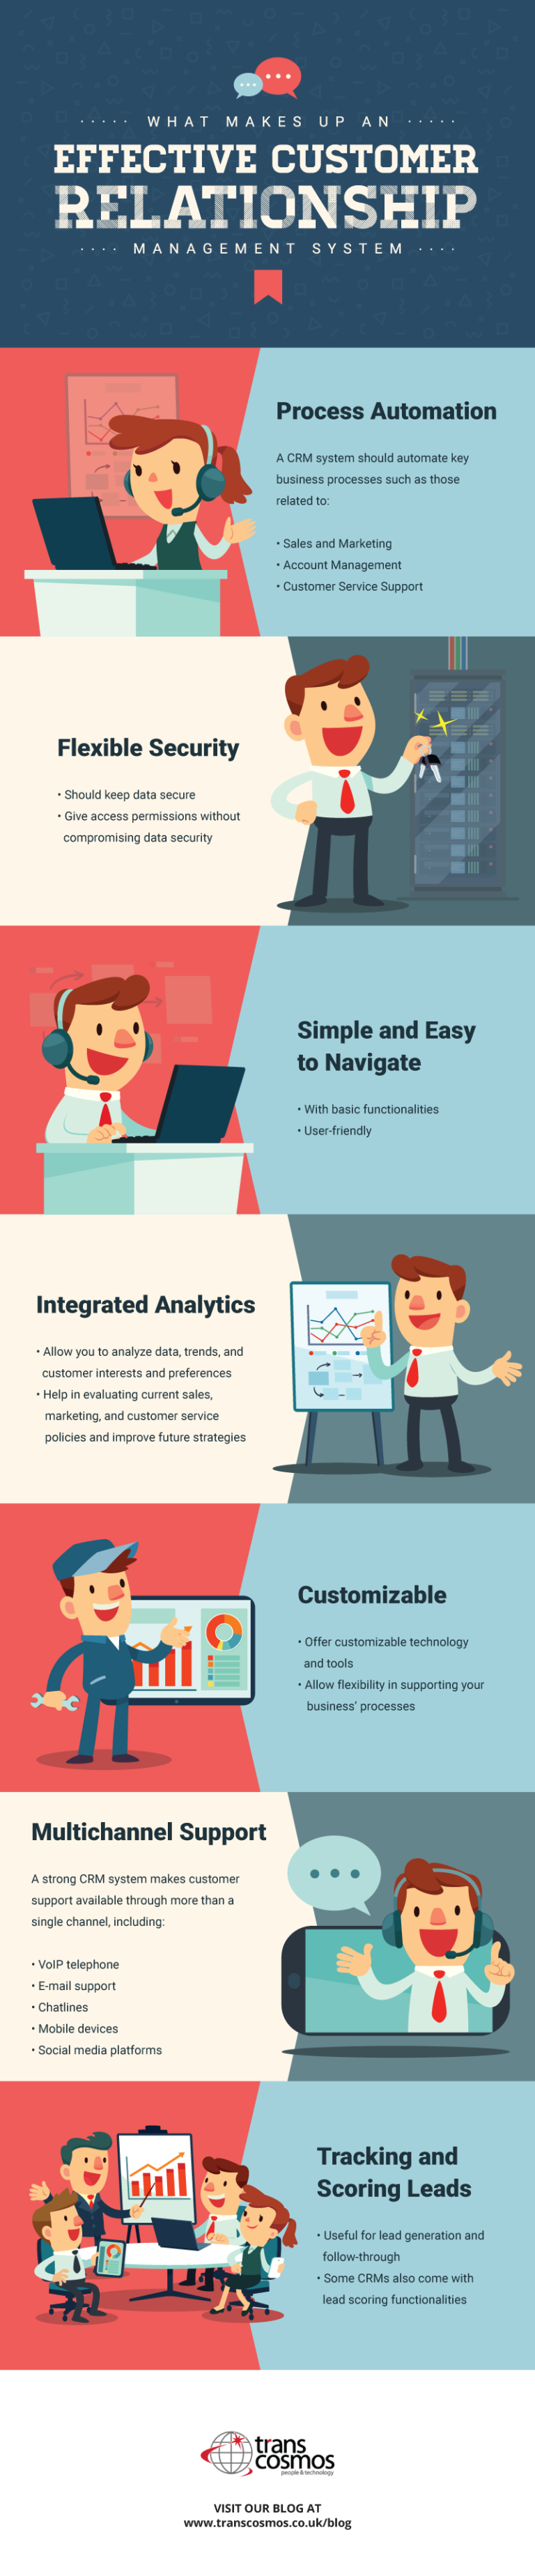 What Are the Best CRM Features for Your Small Business? (Infographic)